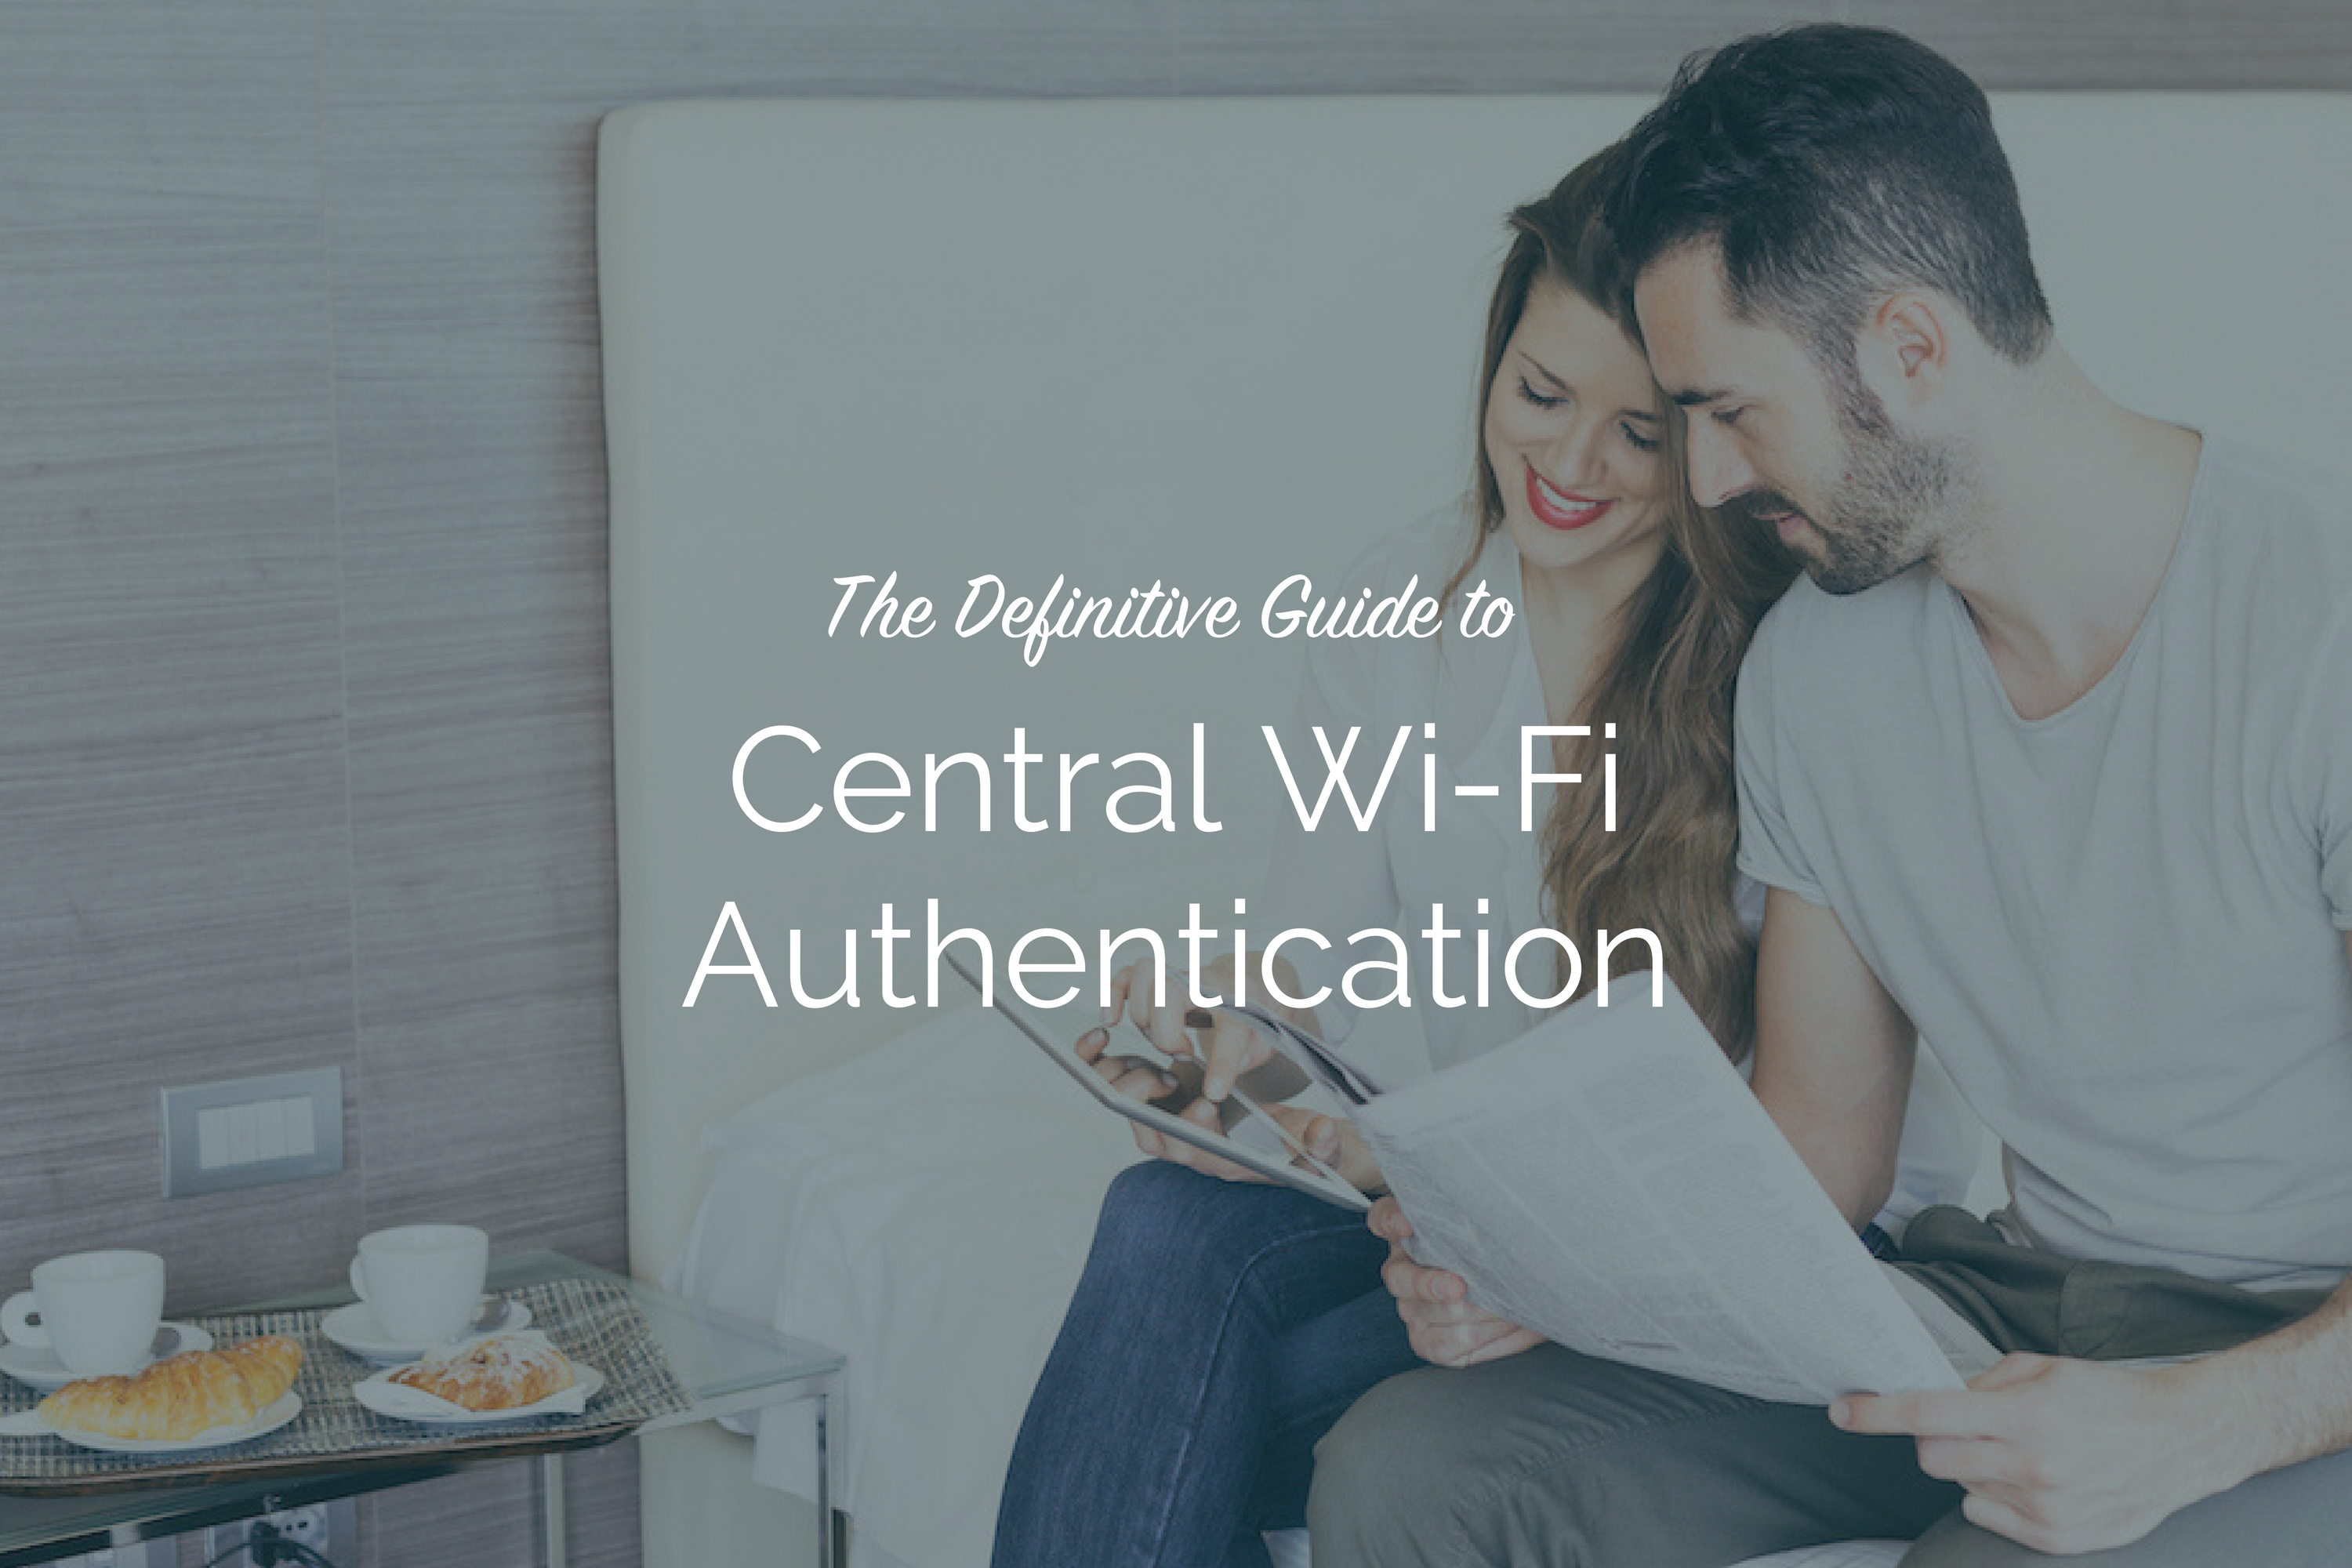 definitive-guide-central-wifi-authentication-passpoint-page.png